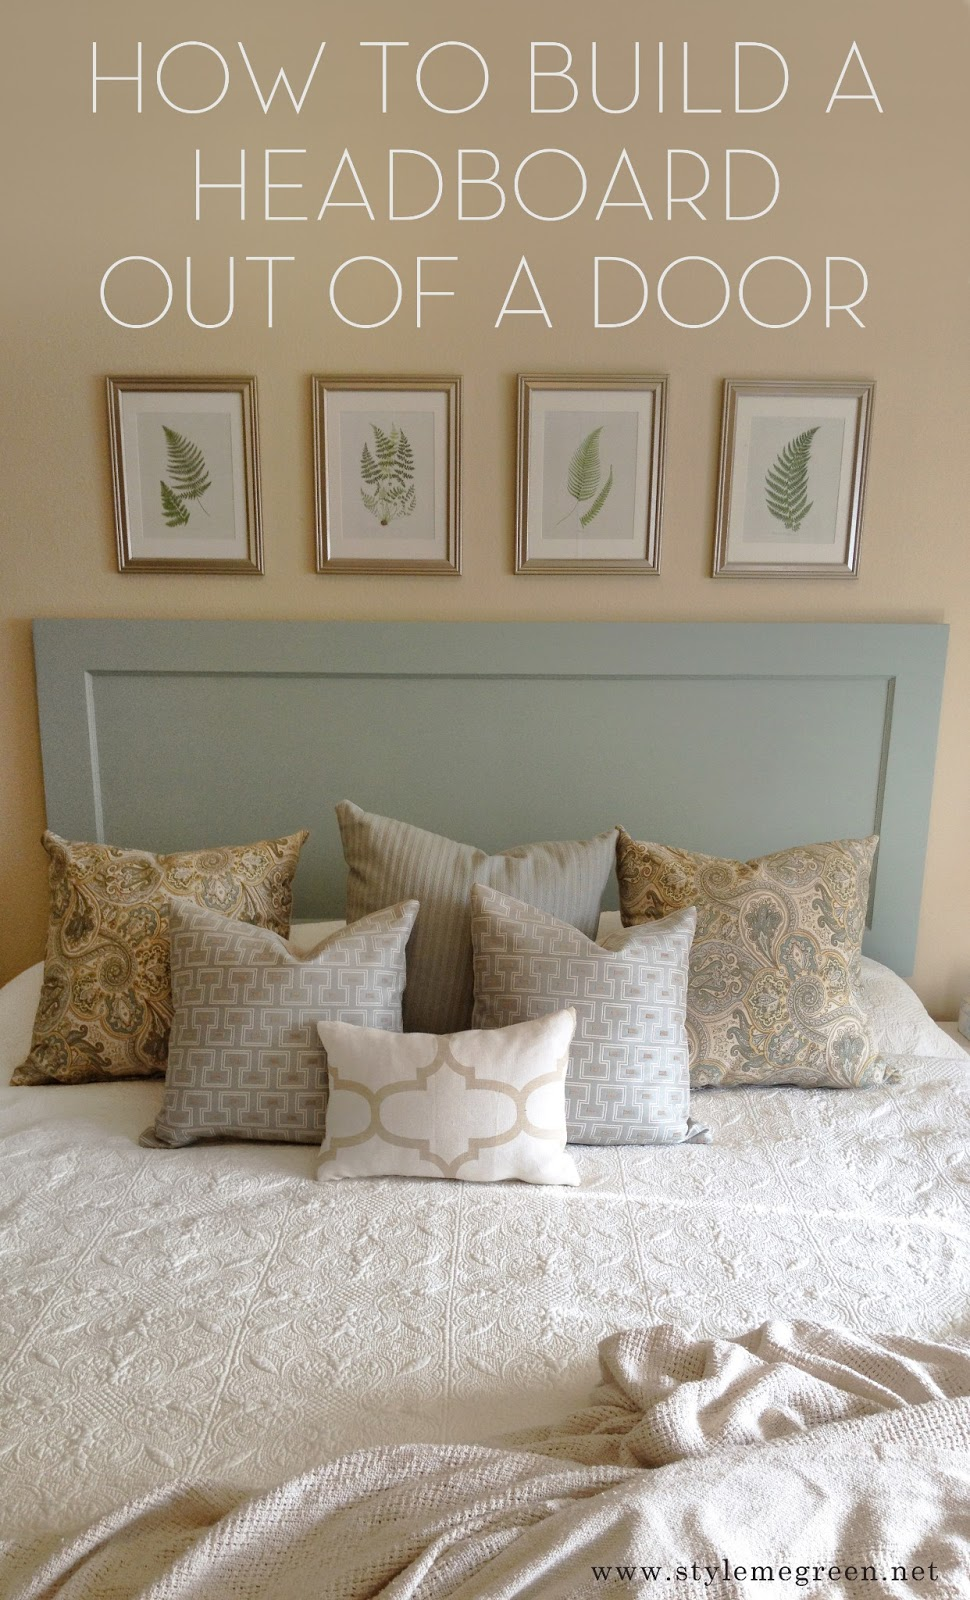 50+ Outstanding DIY Headboard Ideas To Spice Up Your Bedroom ...